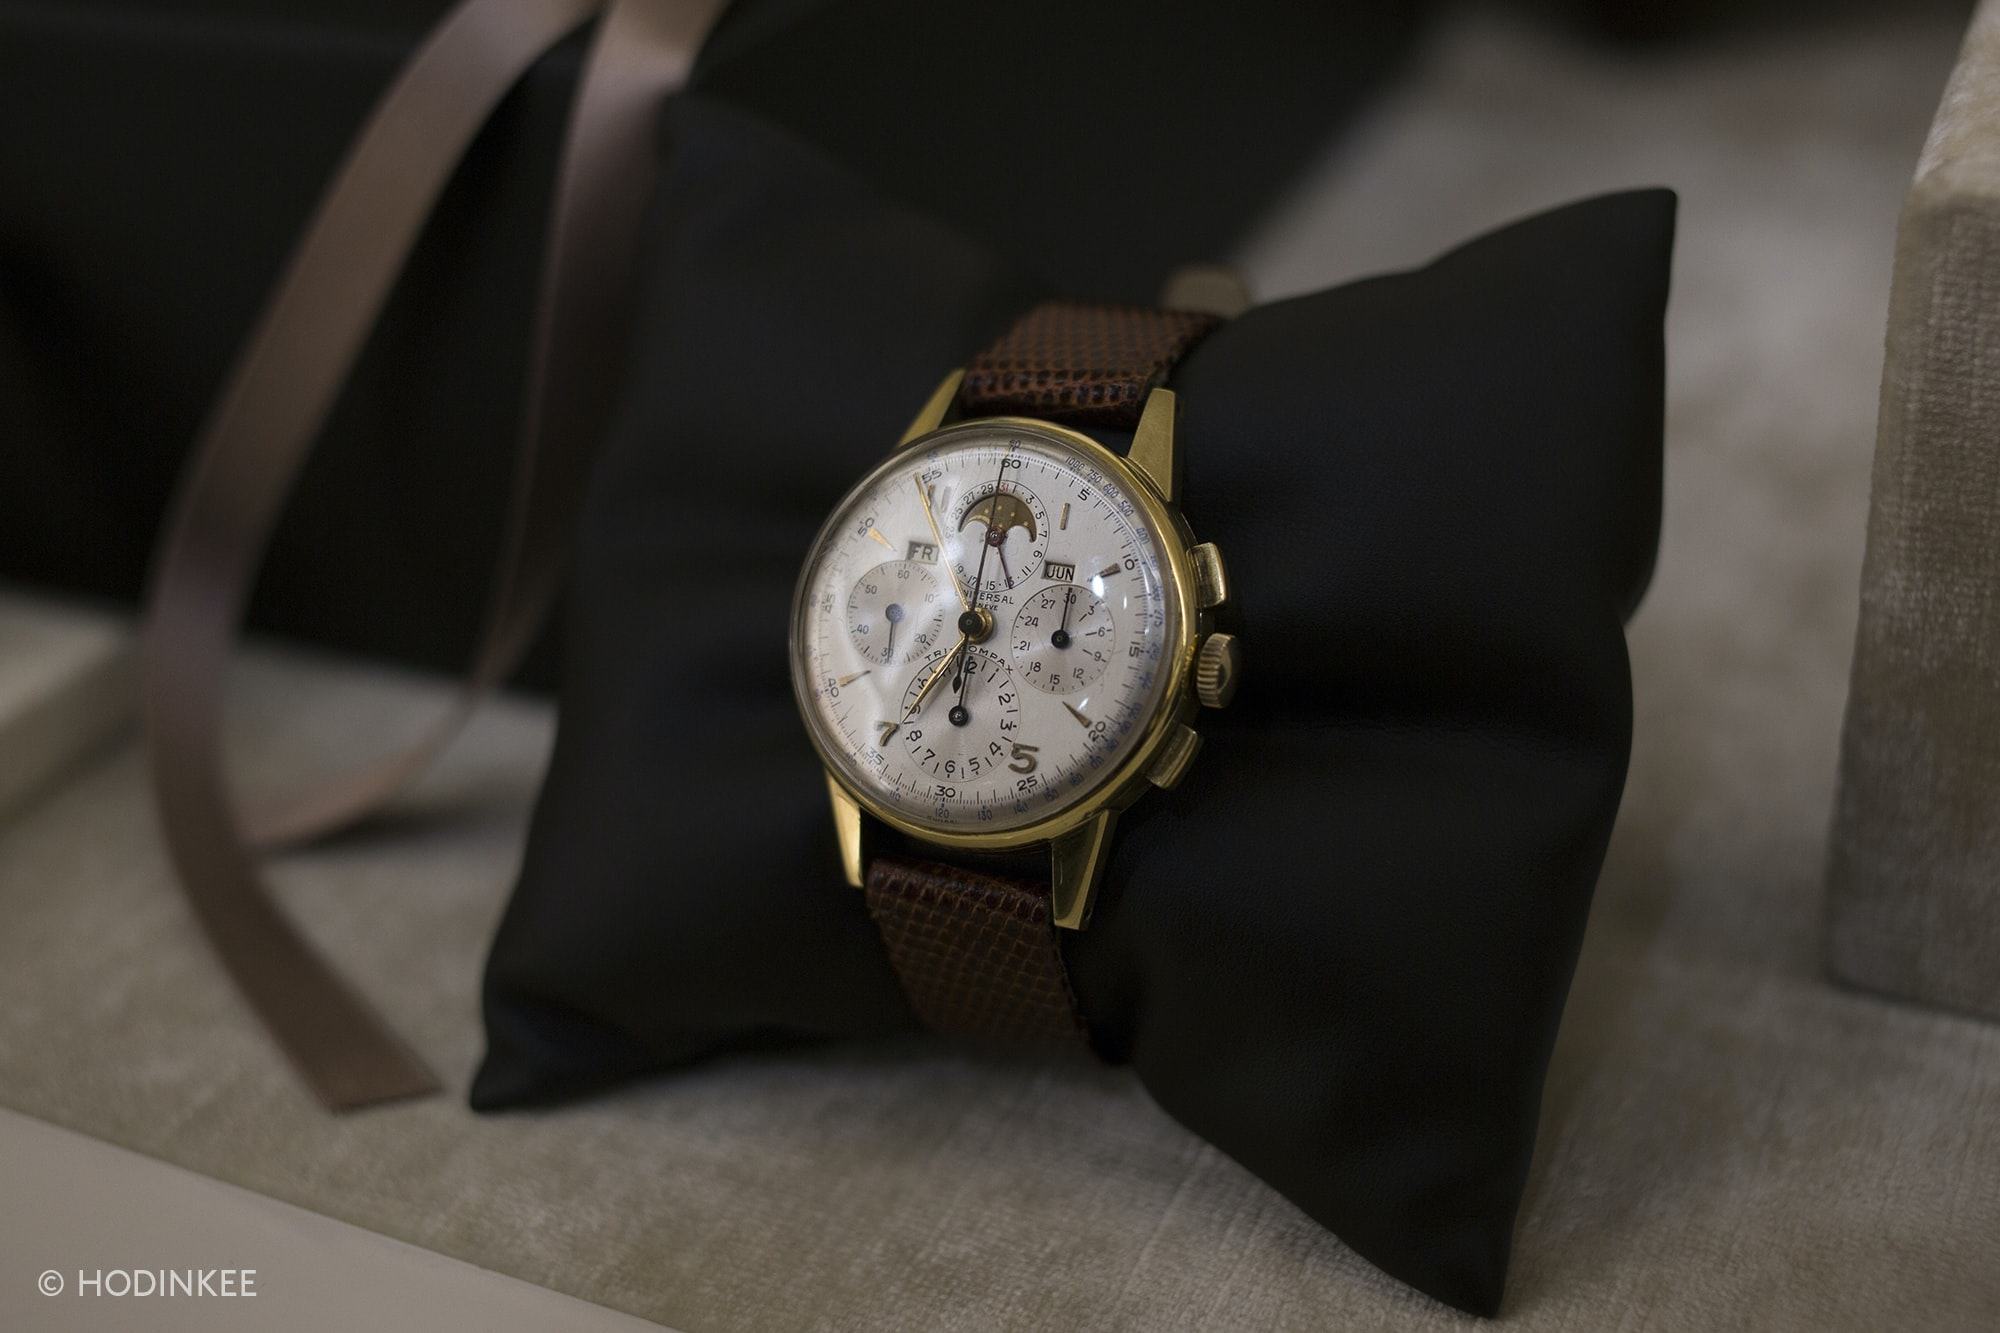 Photo Report: The HODINKEE Ladies' Collection At Material Good Photo Report: The HODINKEE Ladies' Collection At Material Good 20015198 copy